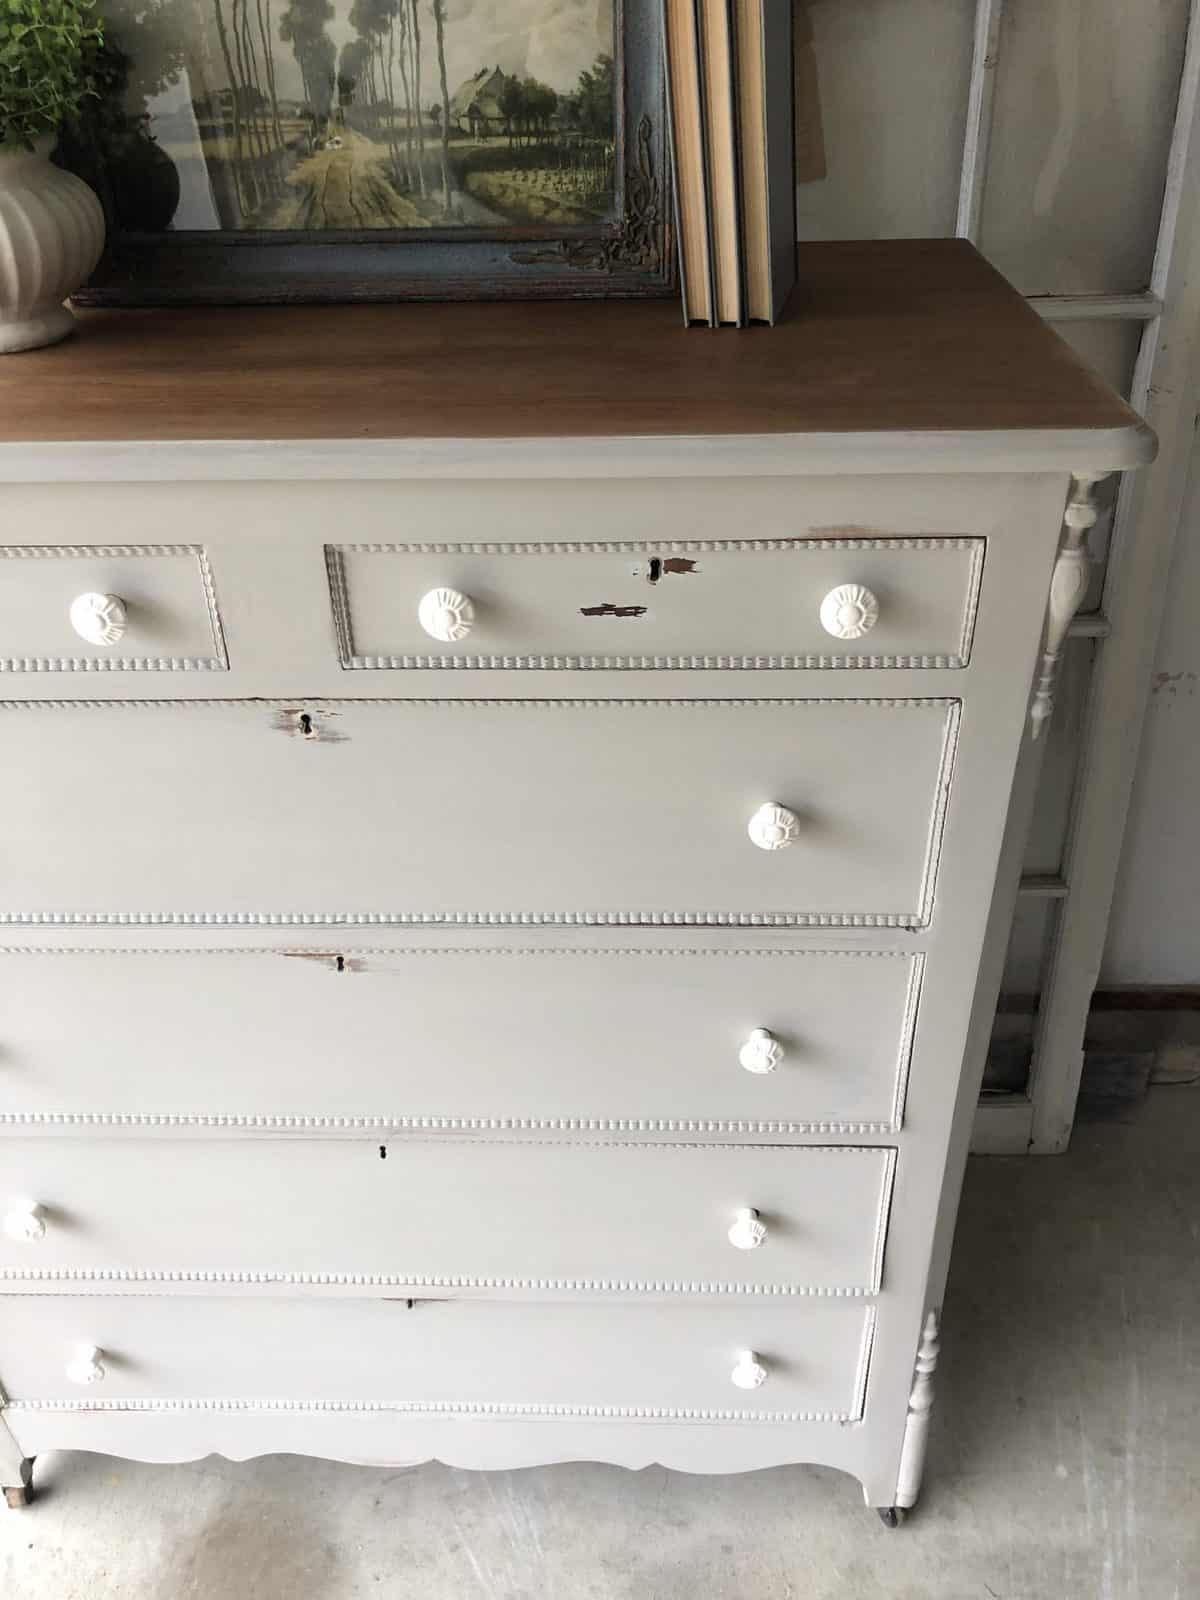 Greige shabby chic vintage distressed tallboy dresser painted with custom grey mixed color furniture paint